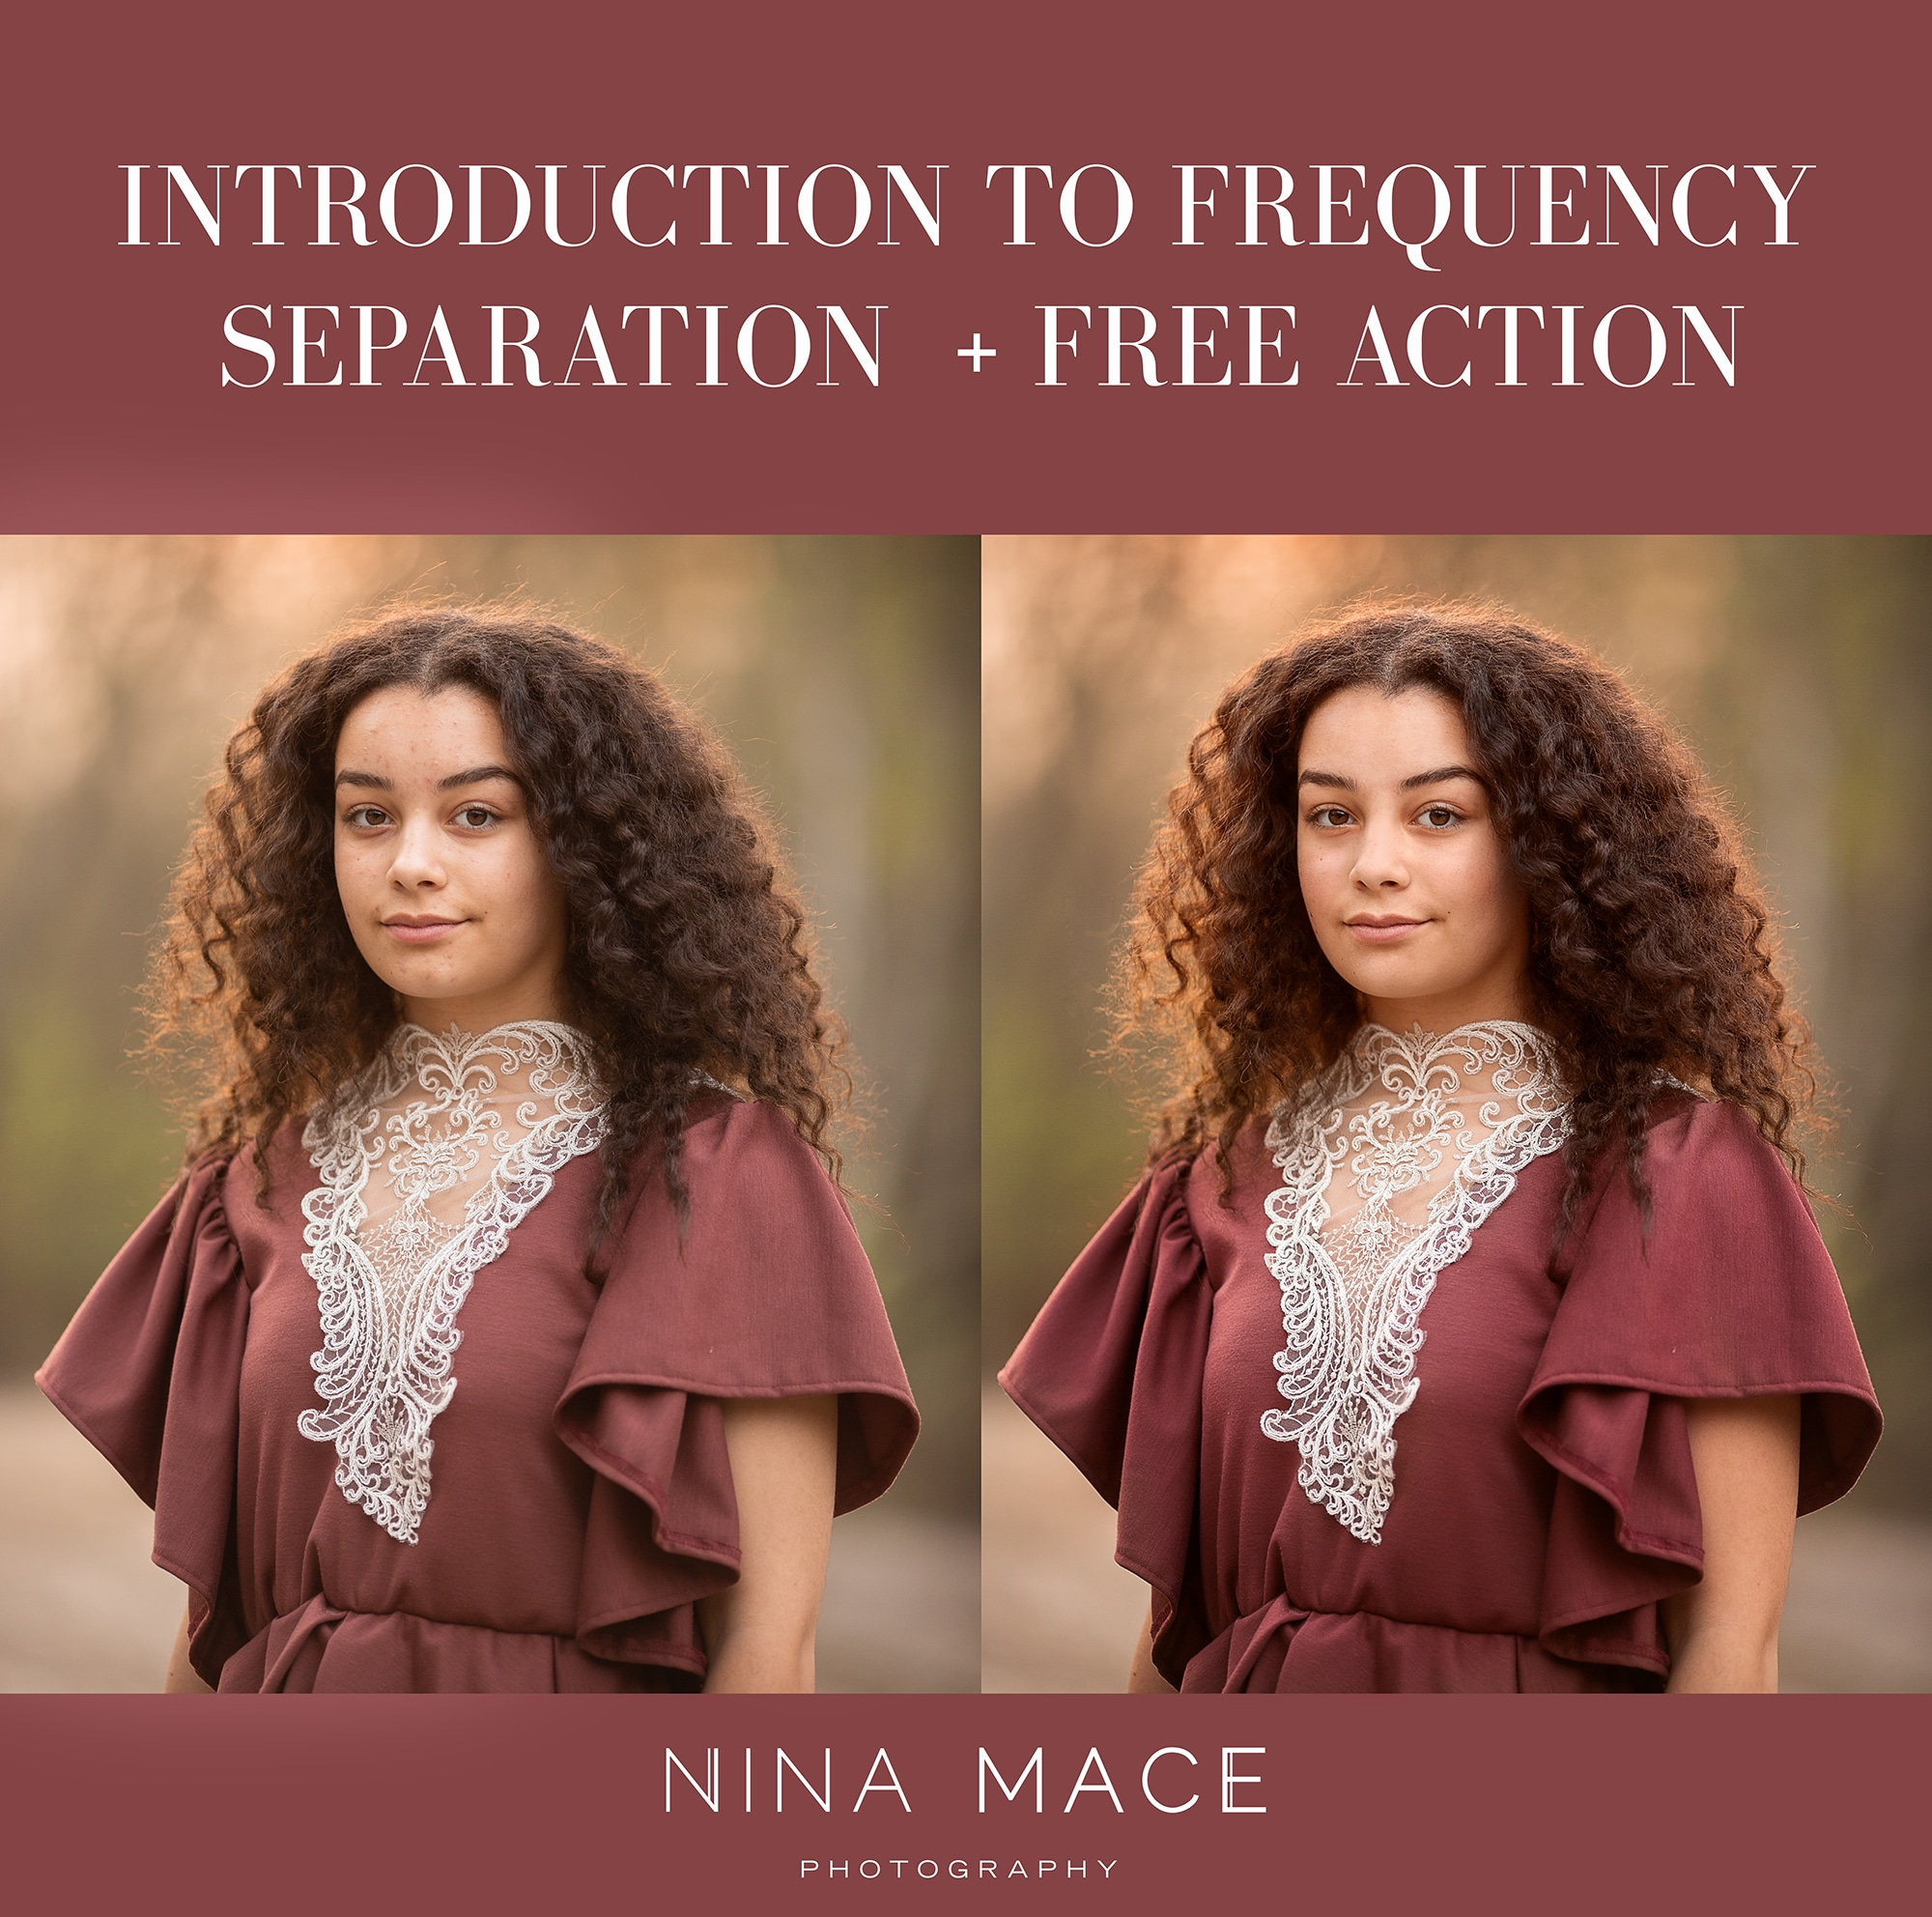 Introduction to Frequency Separation includes FREE